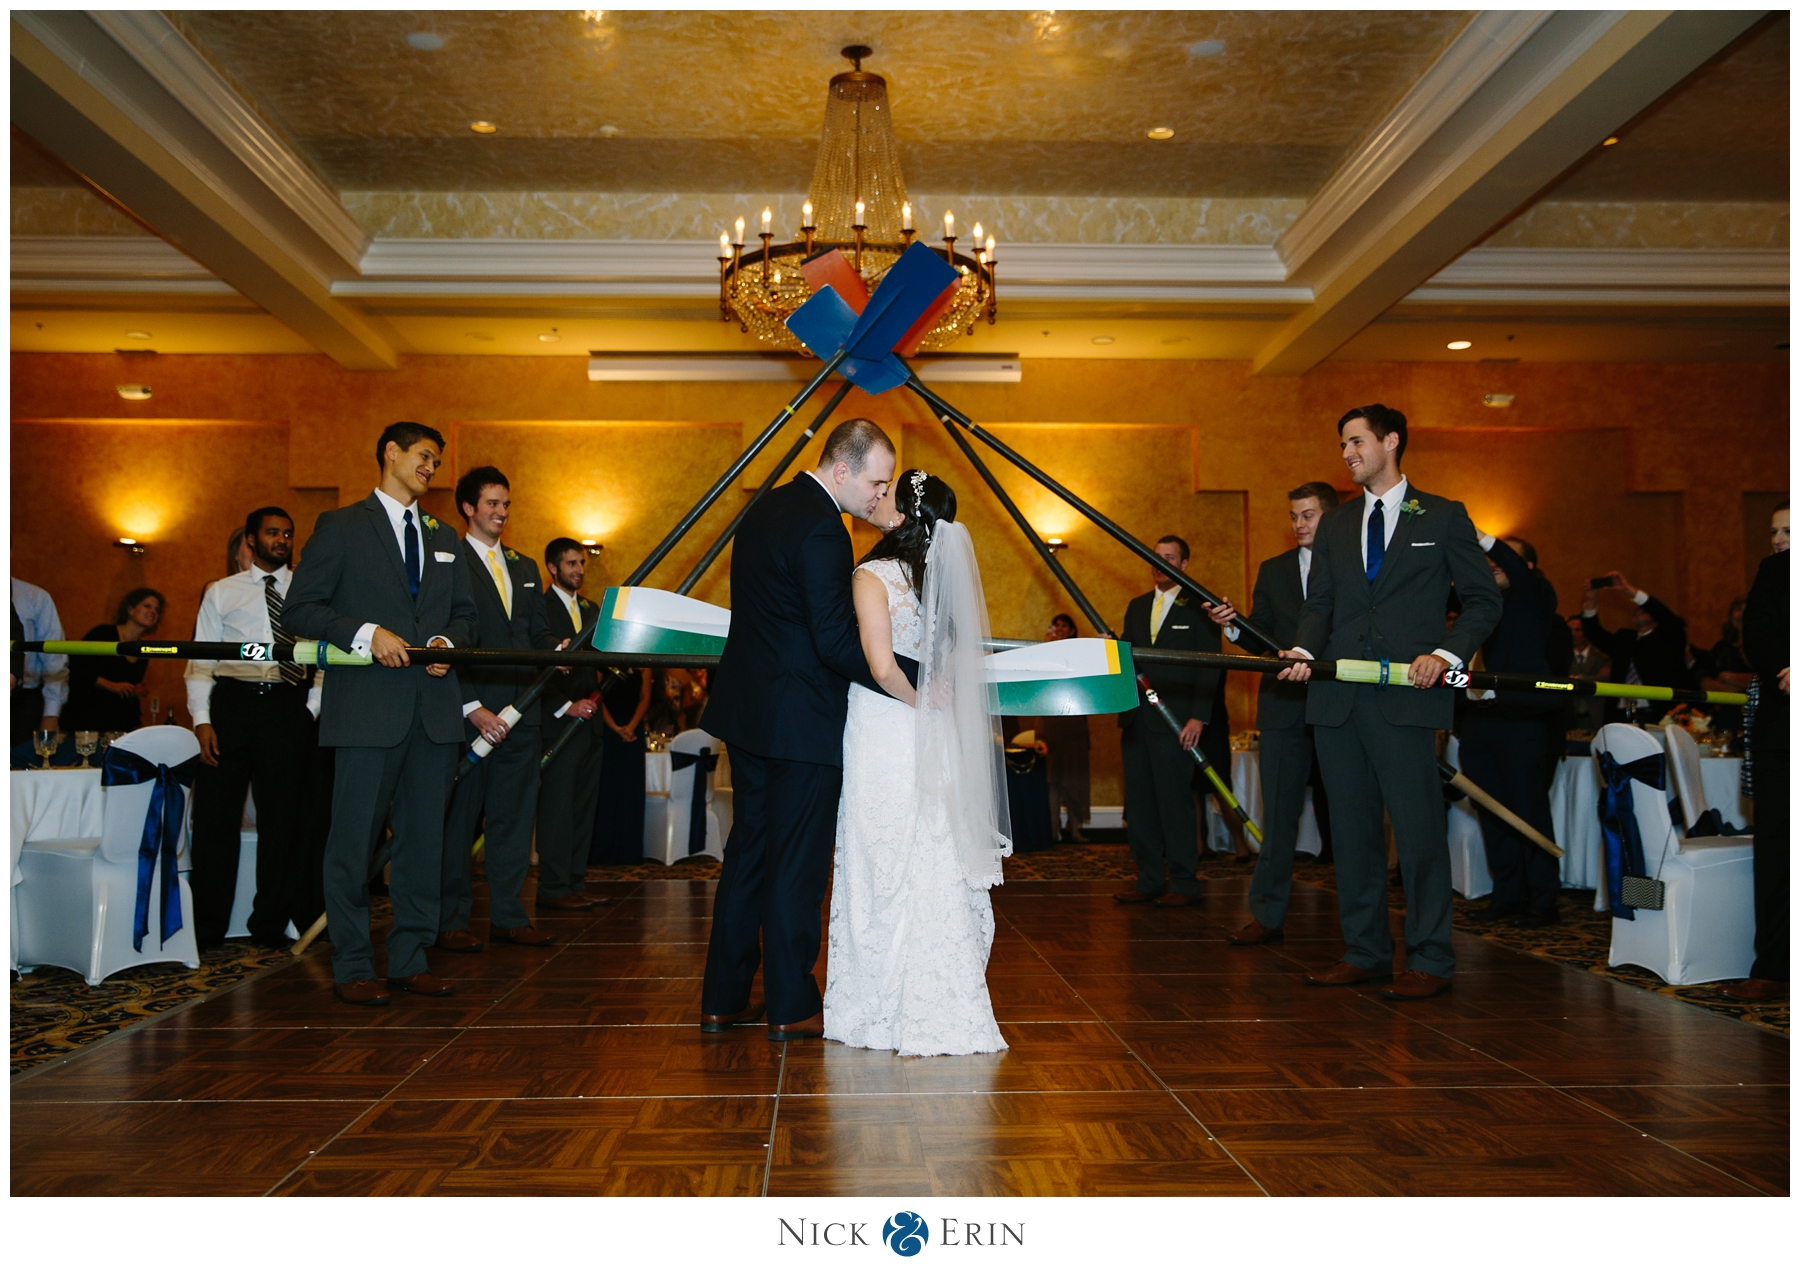 Donner_Photography_Fort Myer Wedding_Katie & Will_0042